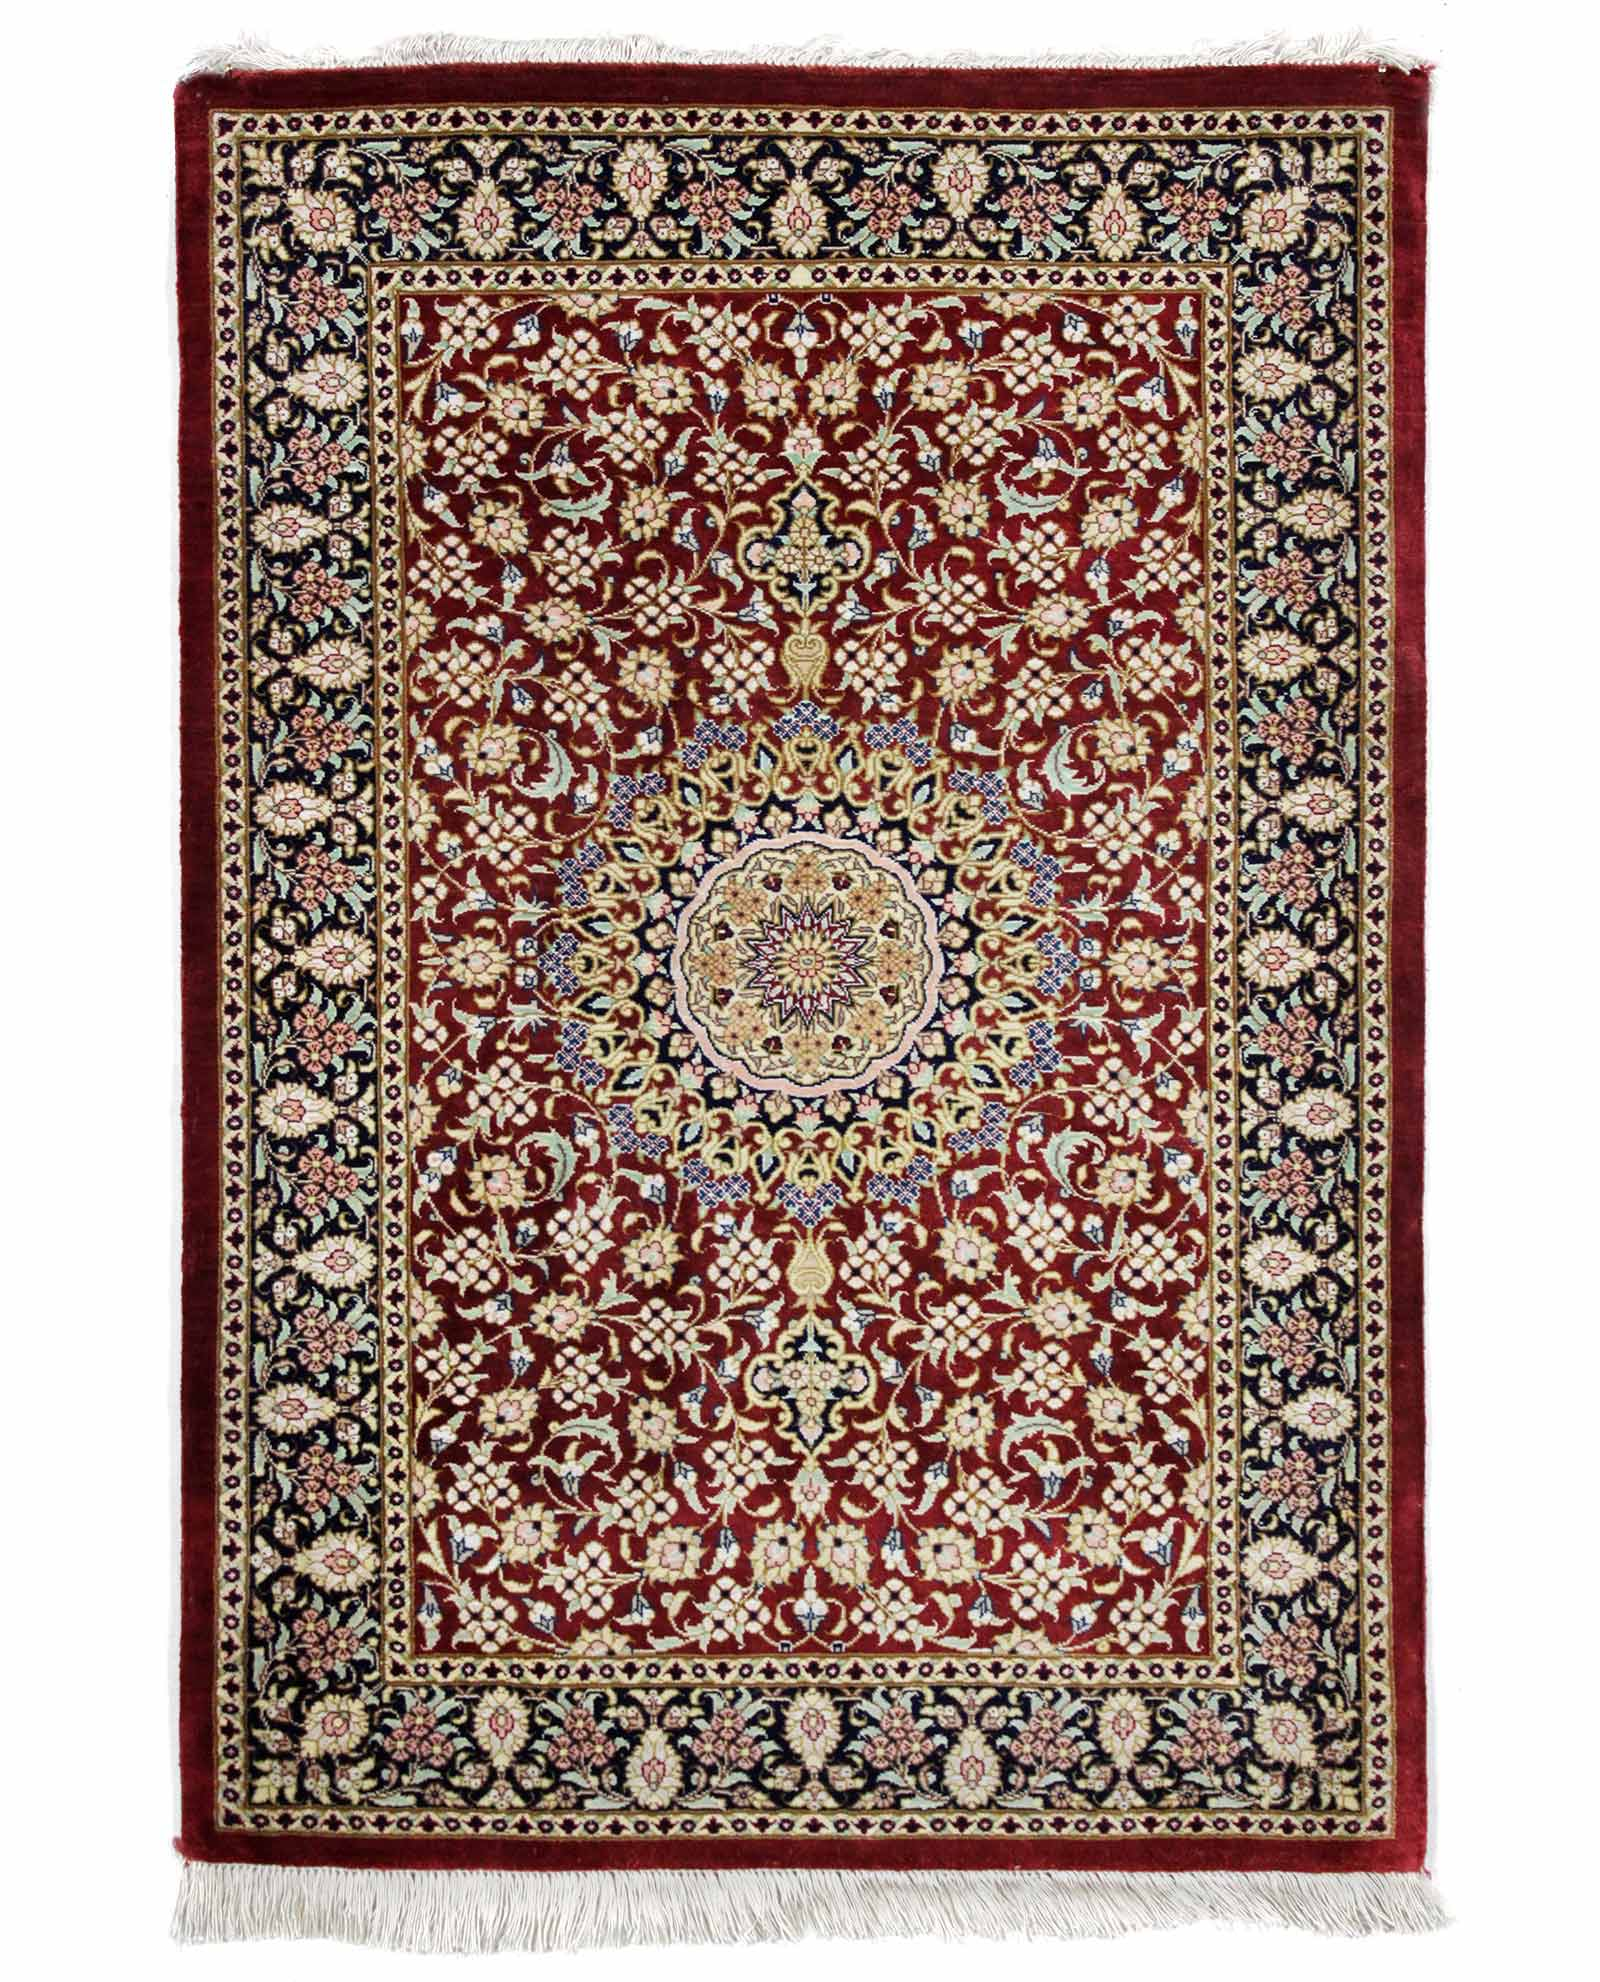 tapis persan ghom soie 14833 iranian carpet. Black Bedroom Furniture Sets. Home Design Ideas